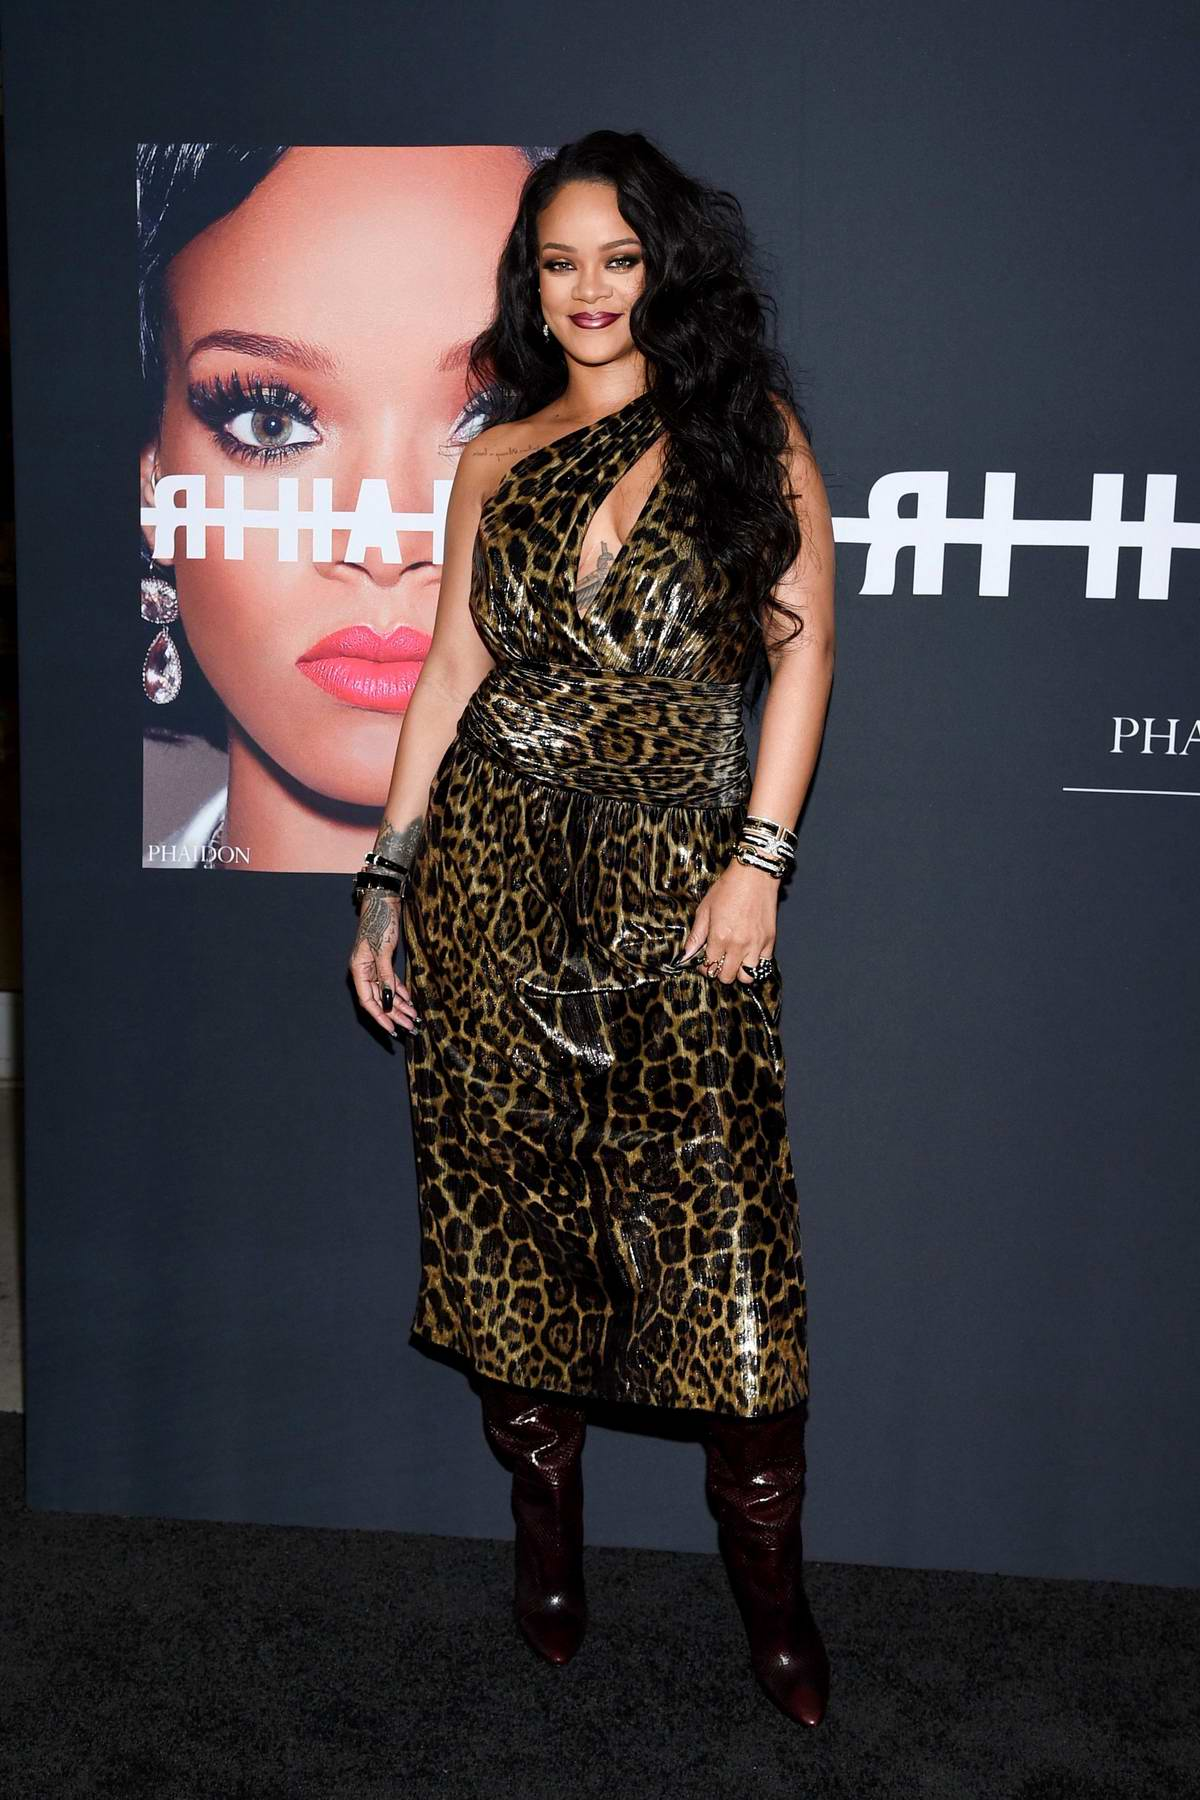 Rihanna attends the launch of her first visual autobiography 'Rihanna' at Guggenheim Museum in New York City